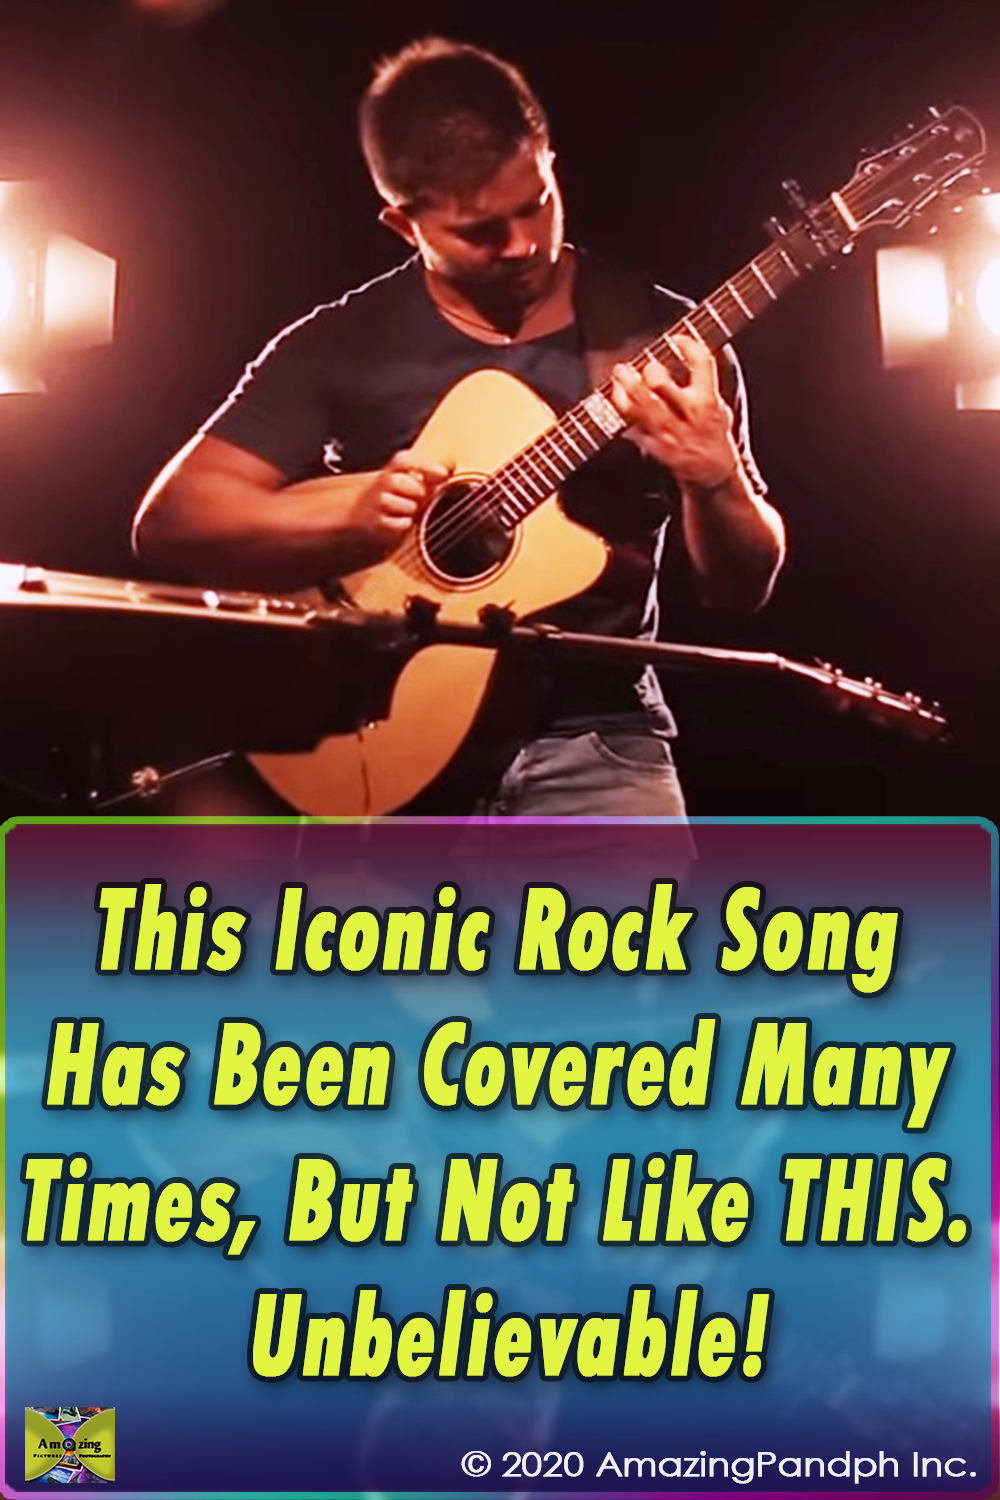 song,viral,rock,cover,beautiful,cool,amazing,best,many times,best cover,best performance,guitar playing,free guitars,guitar for sell,best rock guitar,soft music,viral video,video song,viral song,most shared,most watched